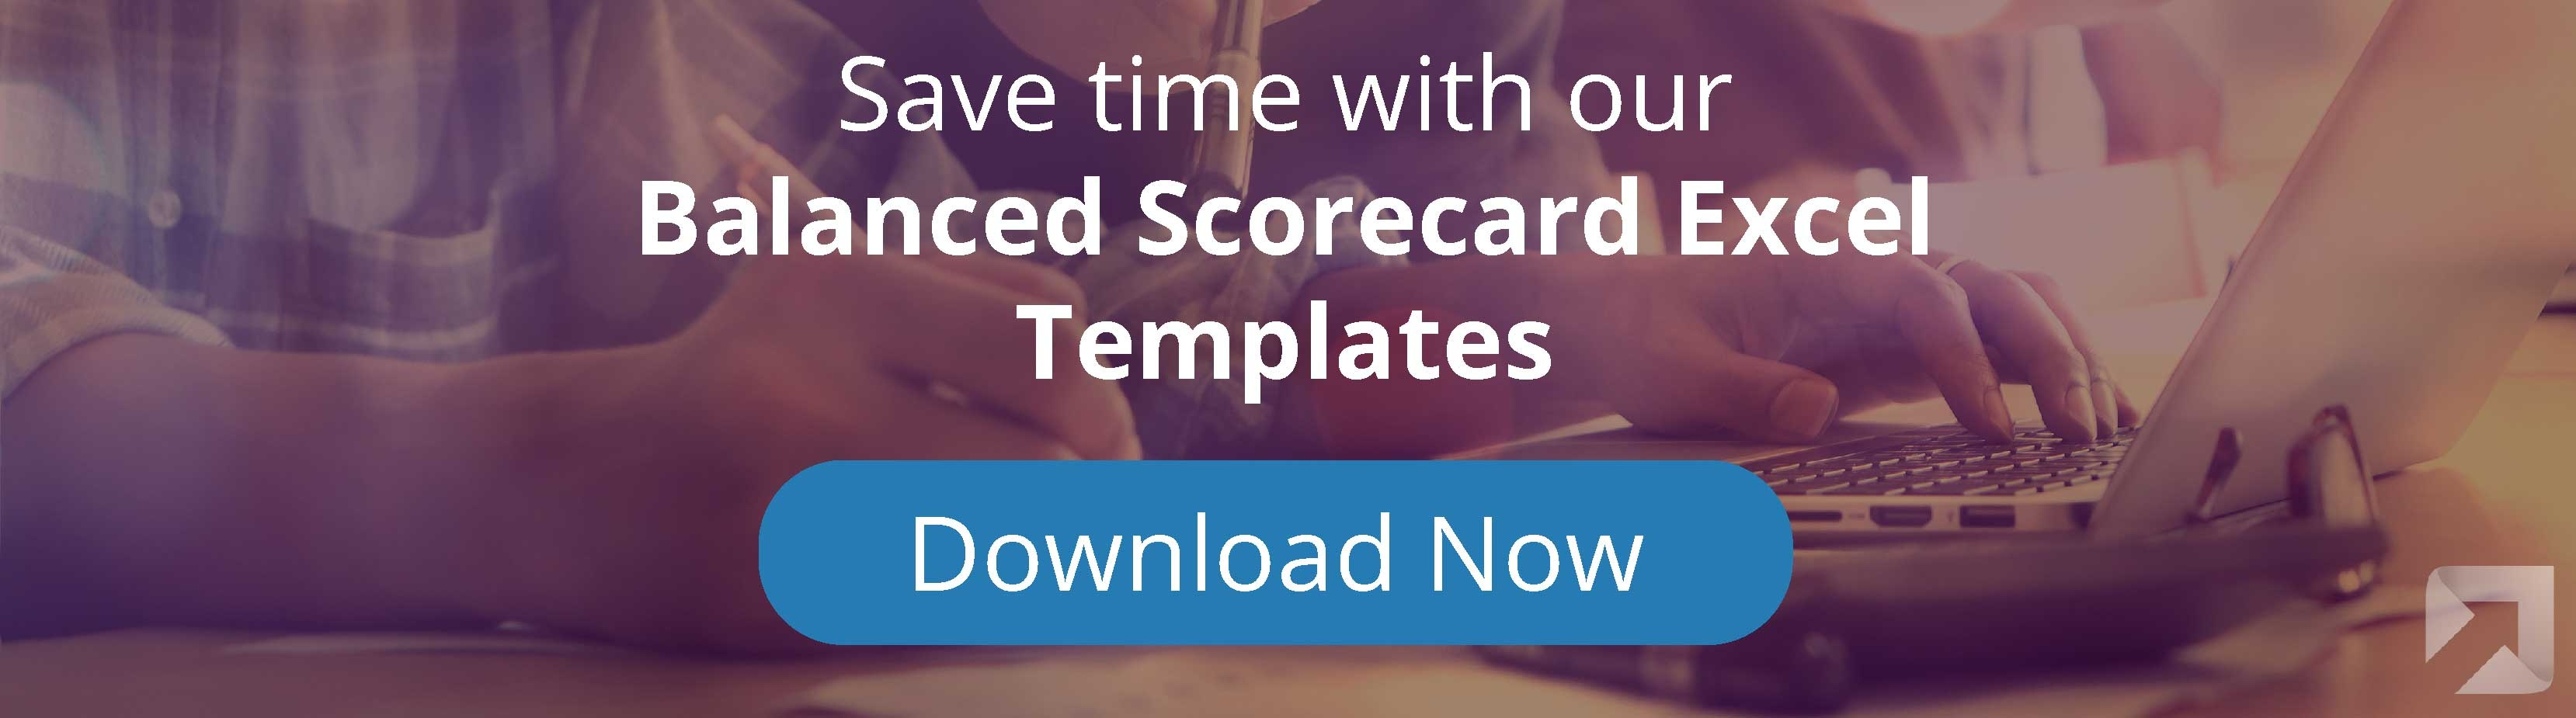 Download your Balanced Scorecard Template